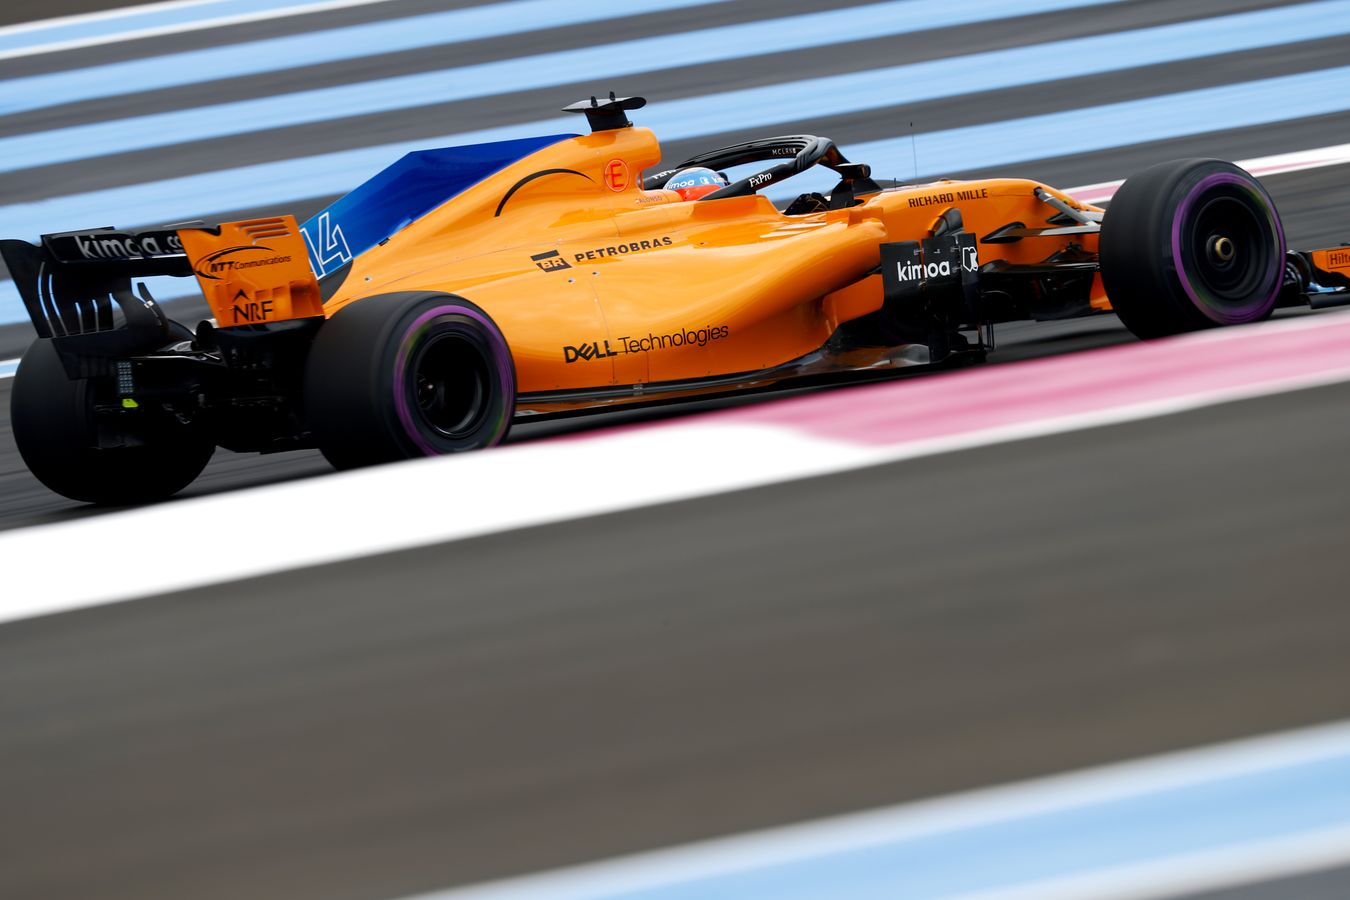 Mclaren Formula 1 2018 French Grand Prix Qualifying